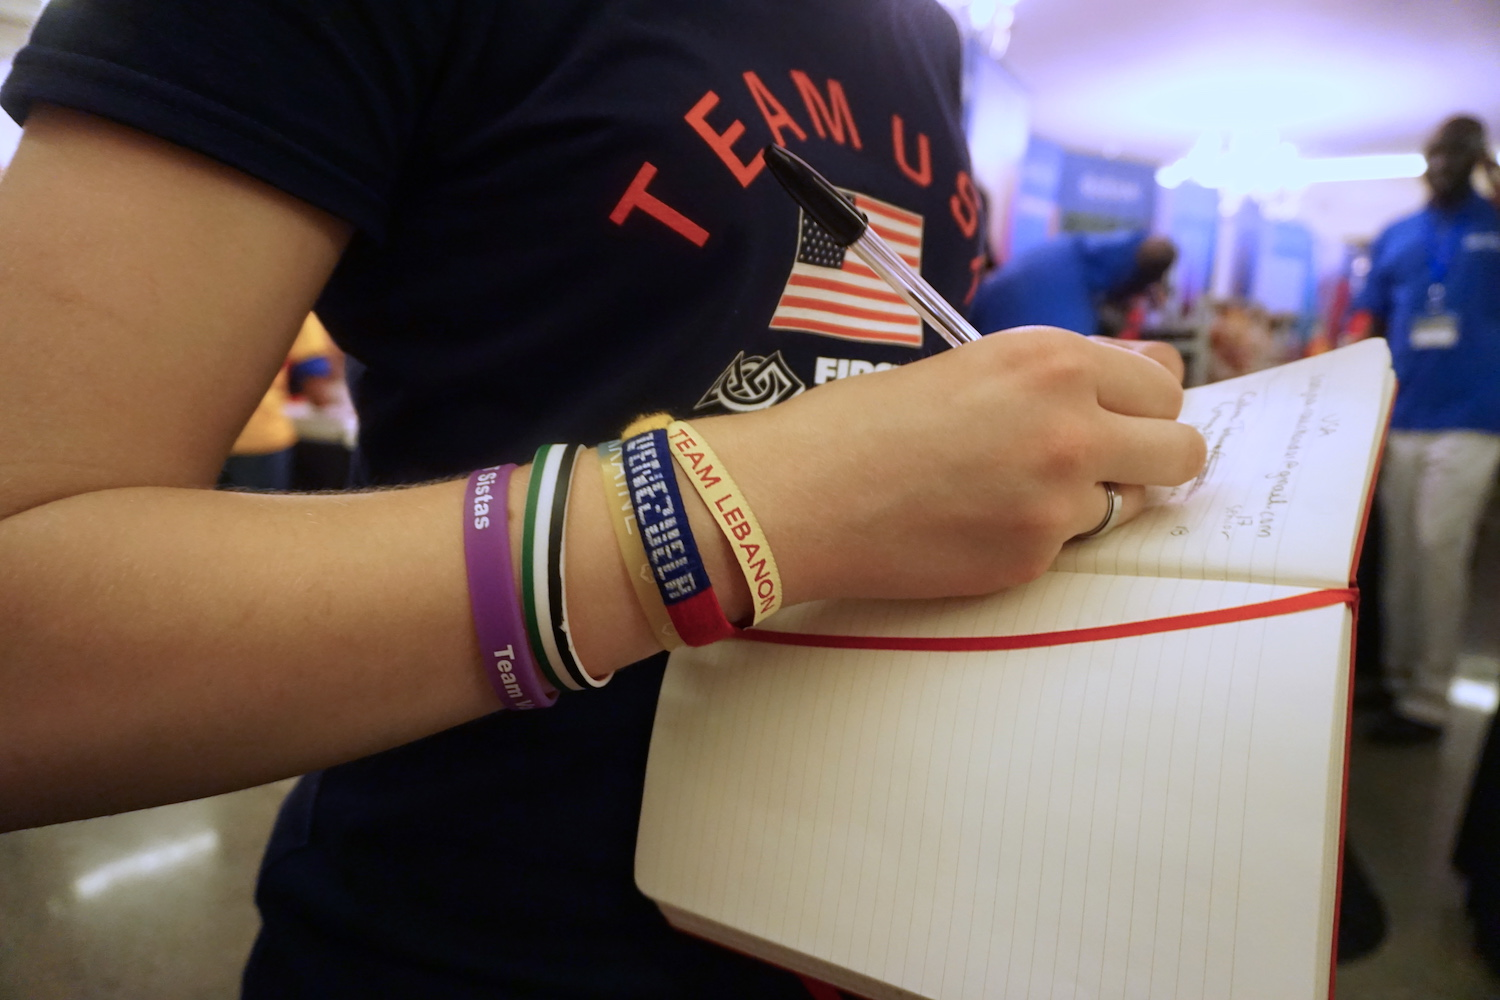 Katie Johnson of Team USA wears bracelets she's exchanged with the other teams from the competition. (Ritu Prasad/Medill News Service)